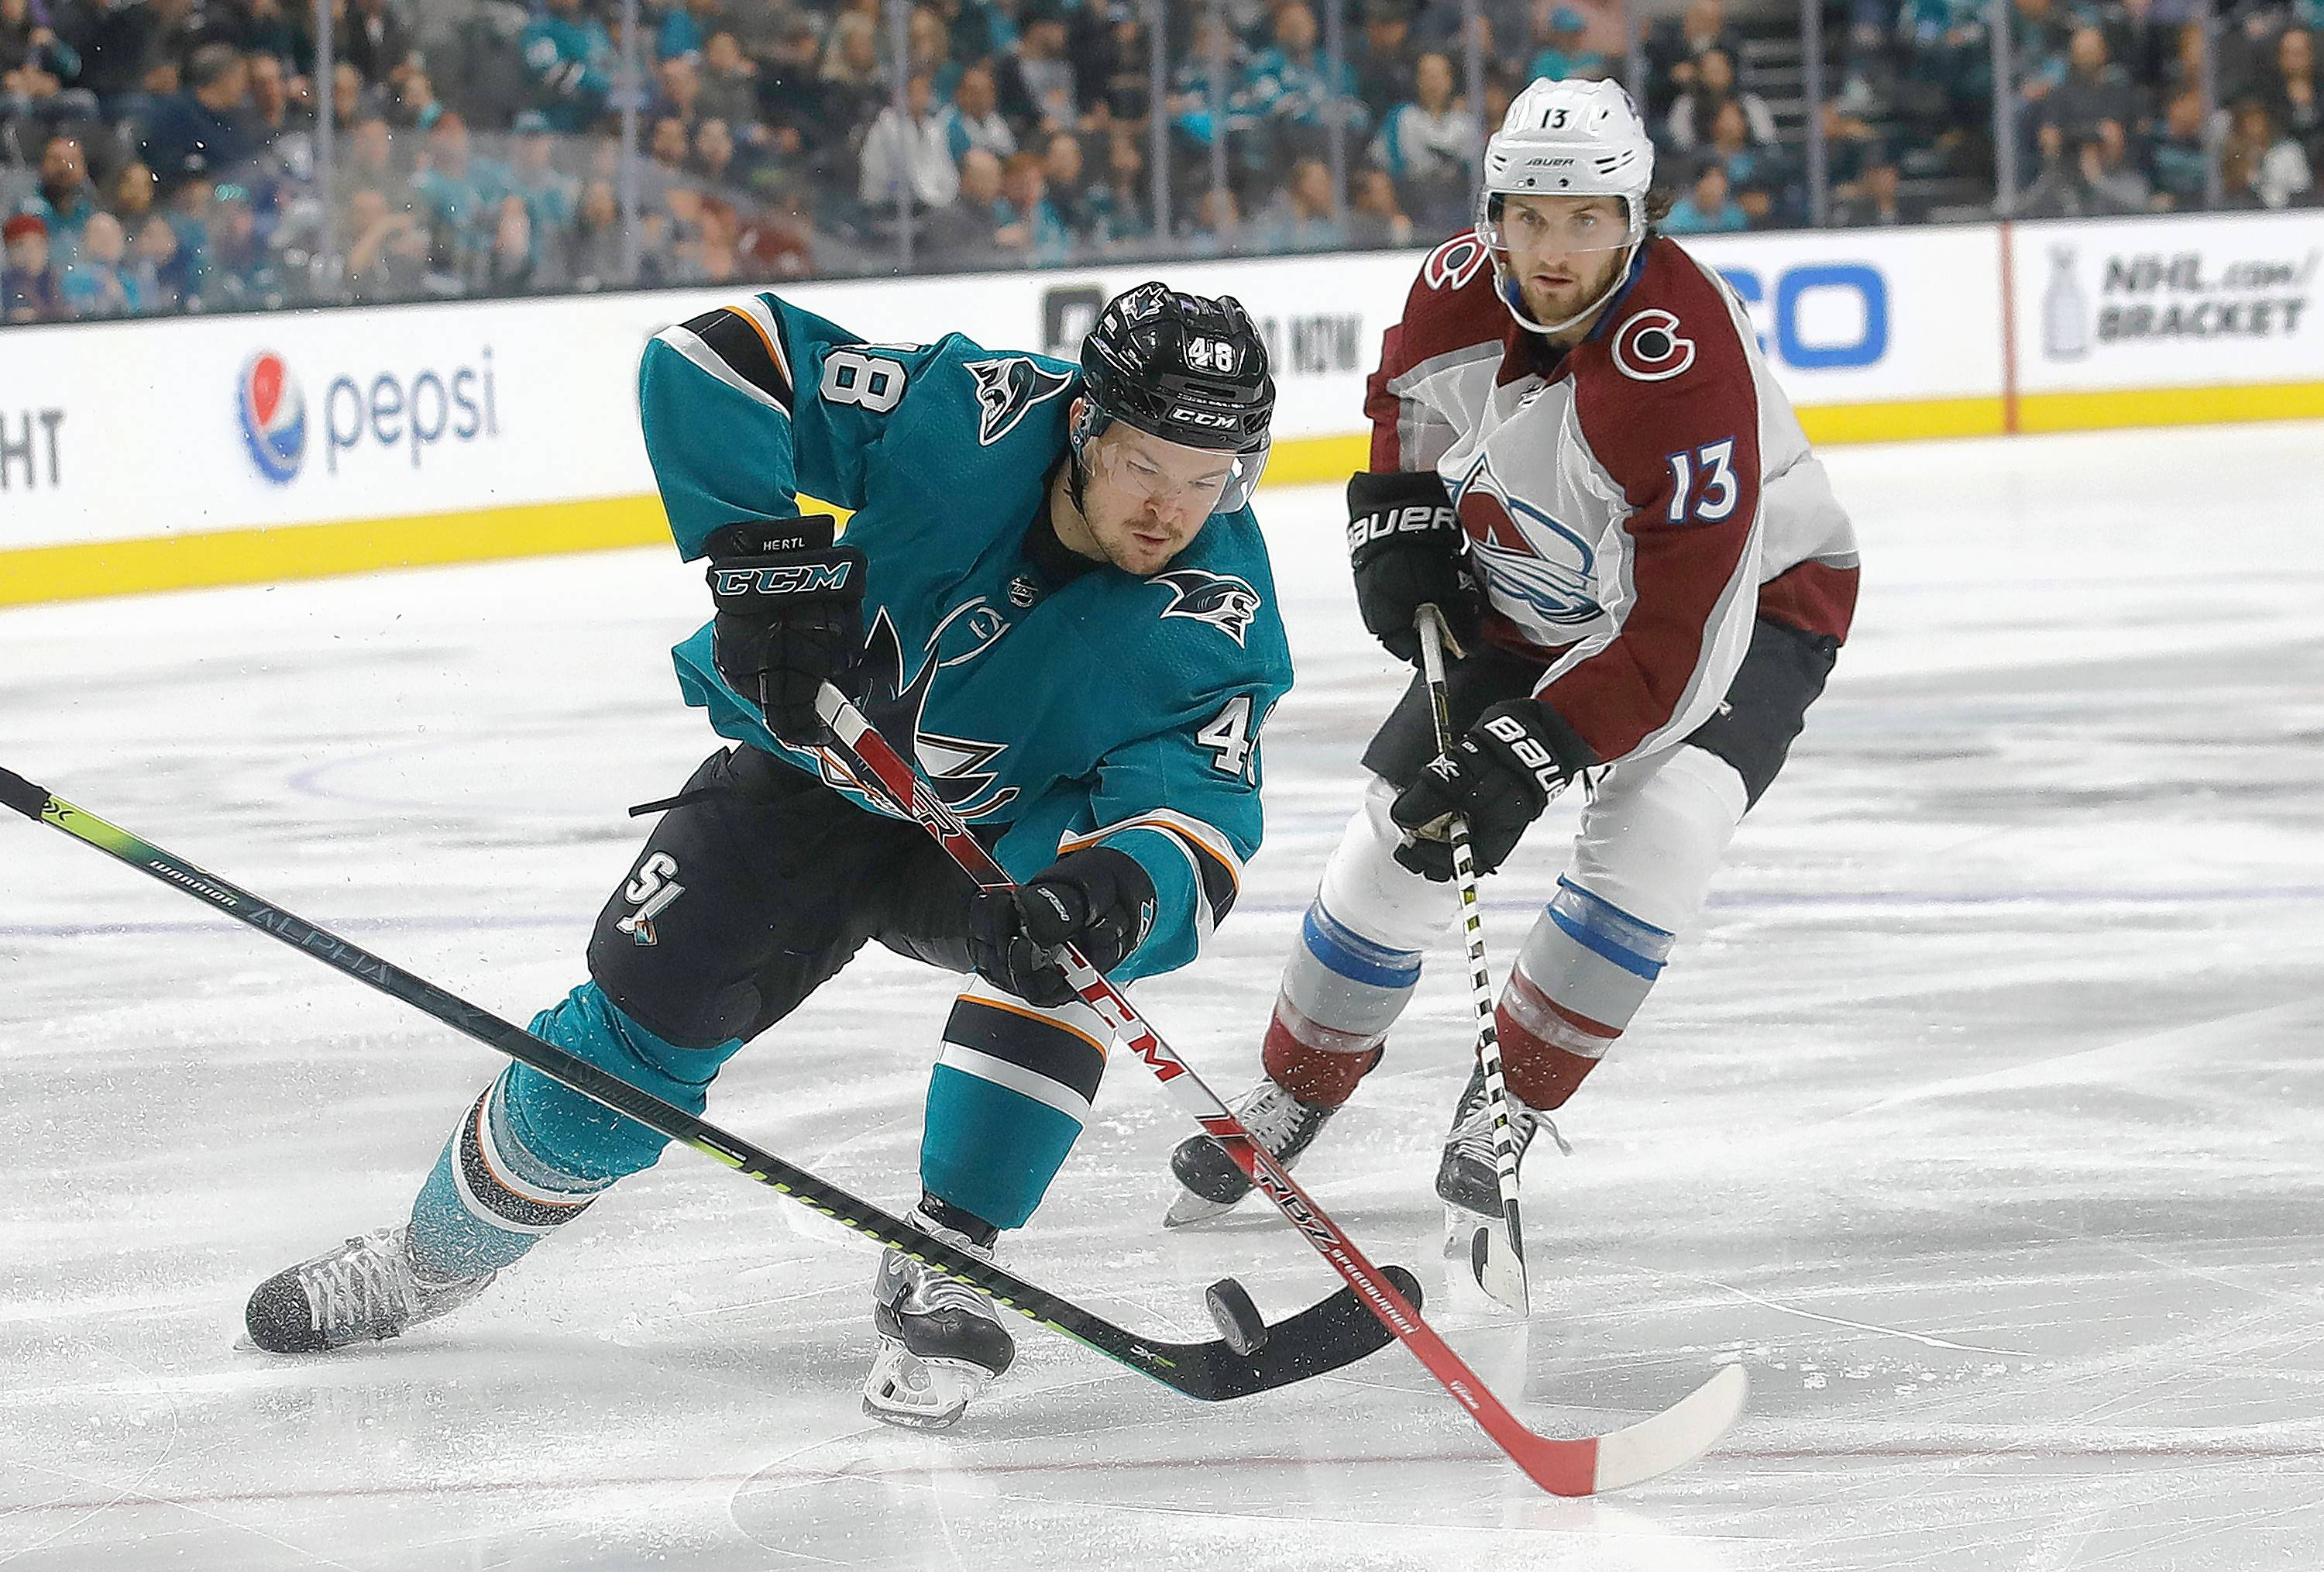 Sharks center Tomas Hertl skates in front of Colorado Avalanche center Alexander Kerfoot during a game April 6 in San Jose, Calif. The Sharks and Avs are facing off again in the second round of NHL playoffs, starting with Friday's game in San Jose.